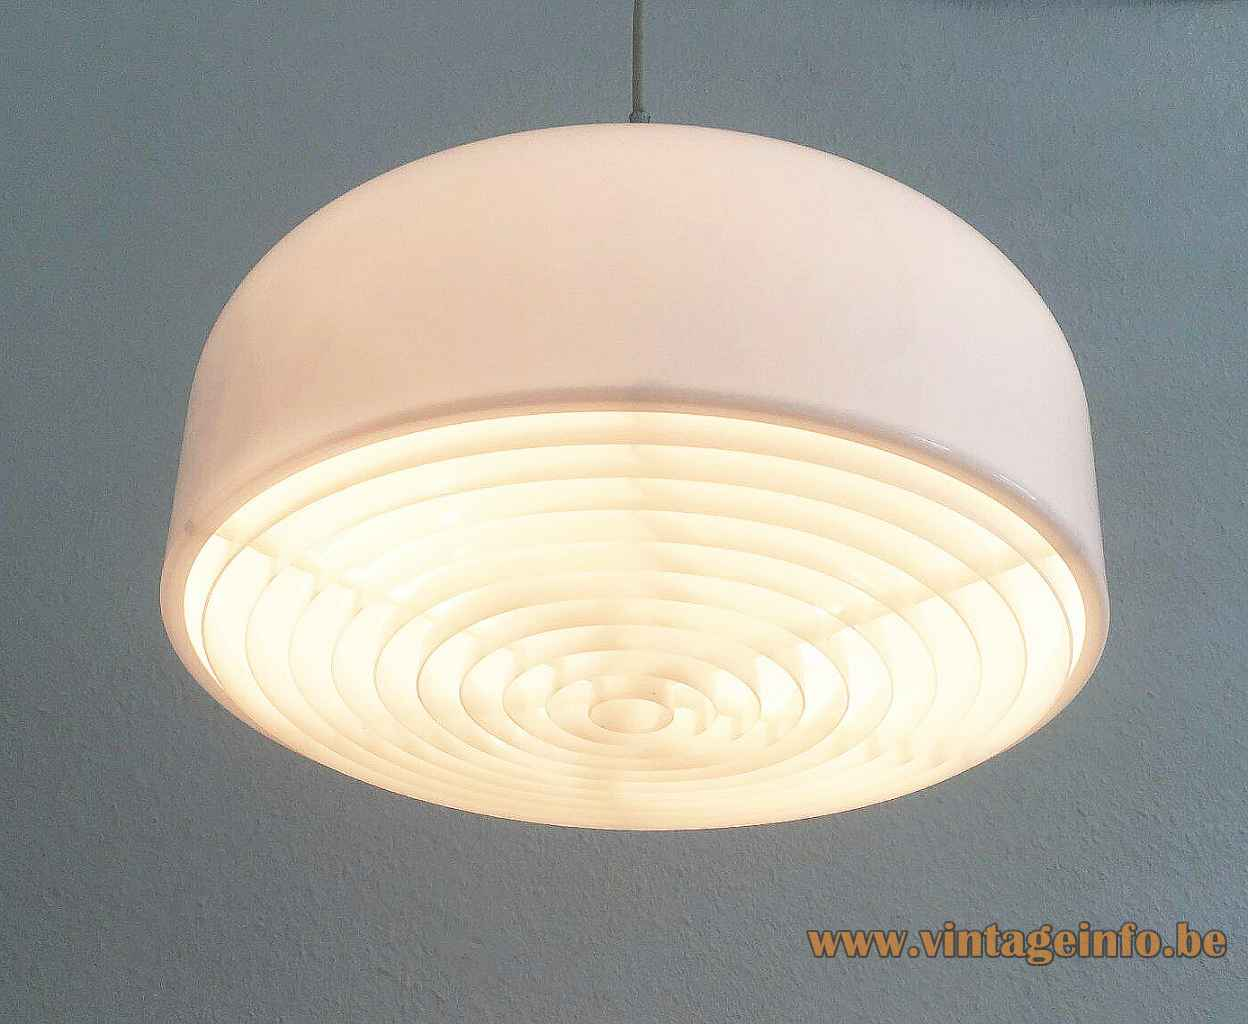 Ateljé Lyktan Knubbling pendant lamp white acrylic lampshade yellow lid grid diffuser 1970s Design: Anders Pehrson